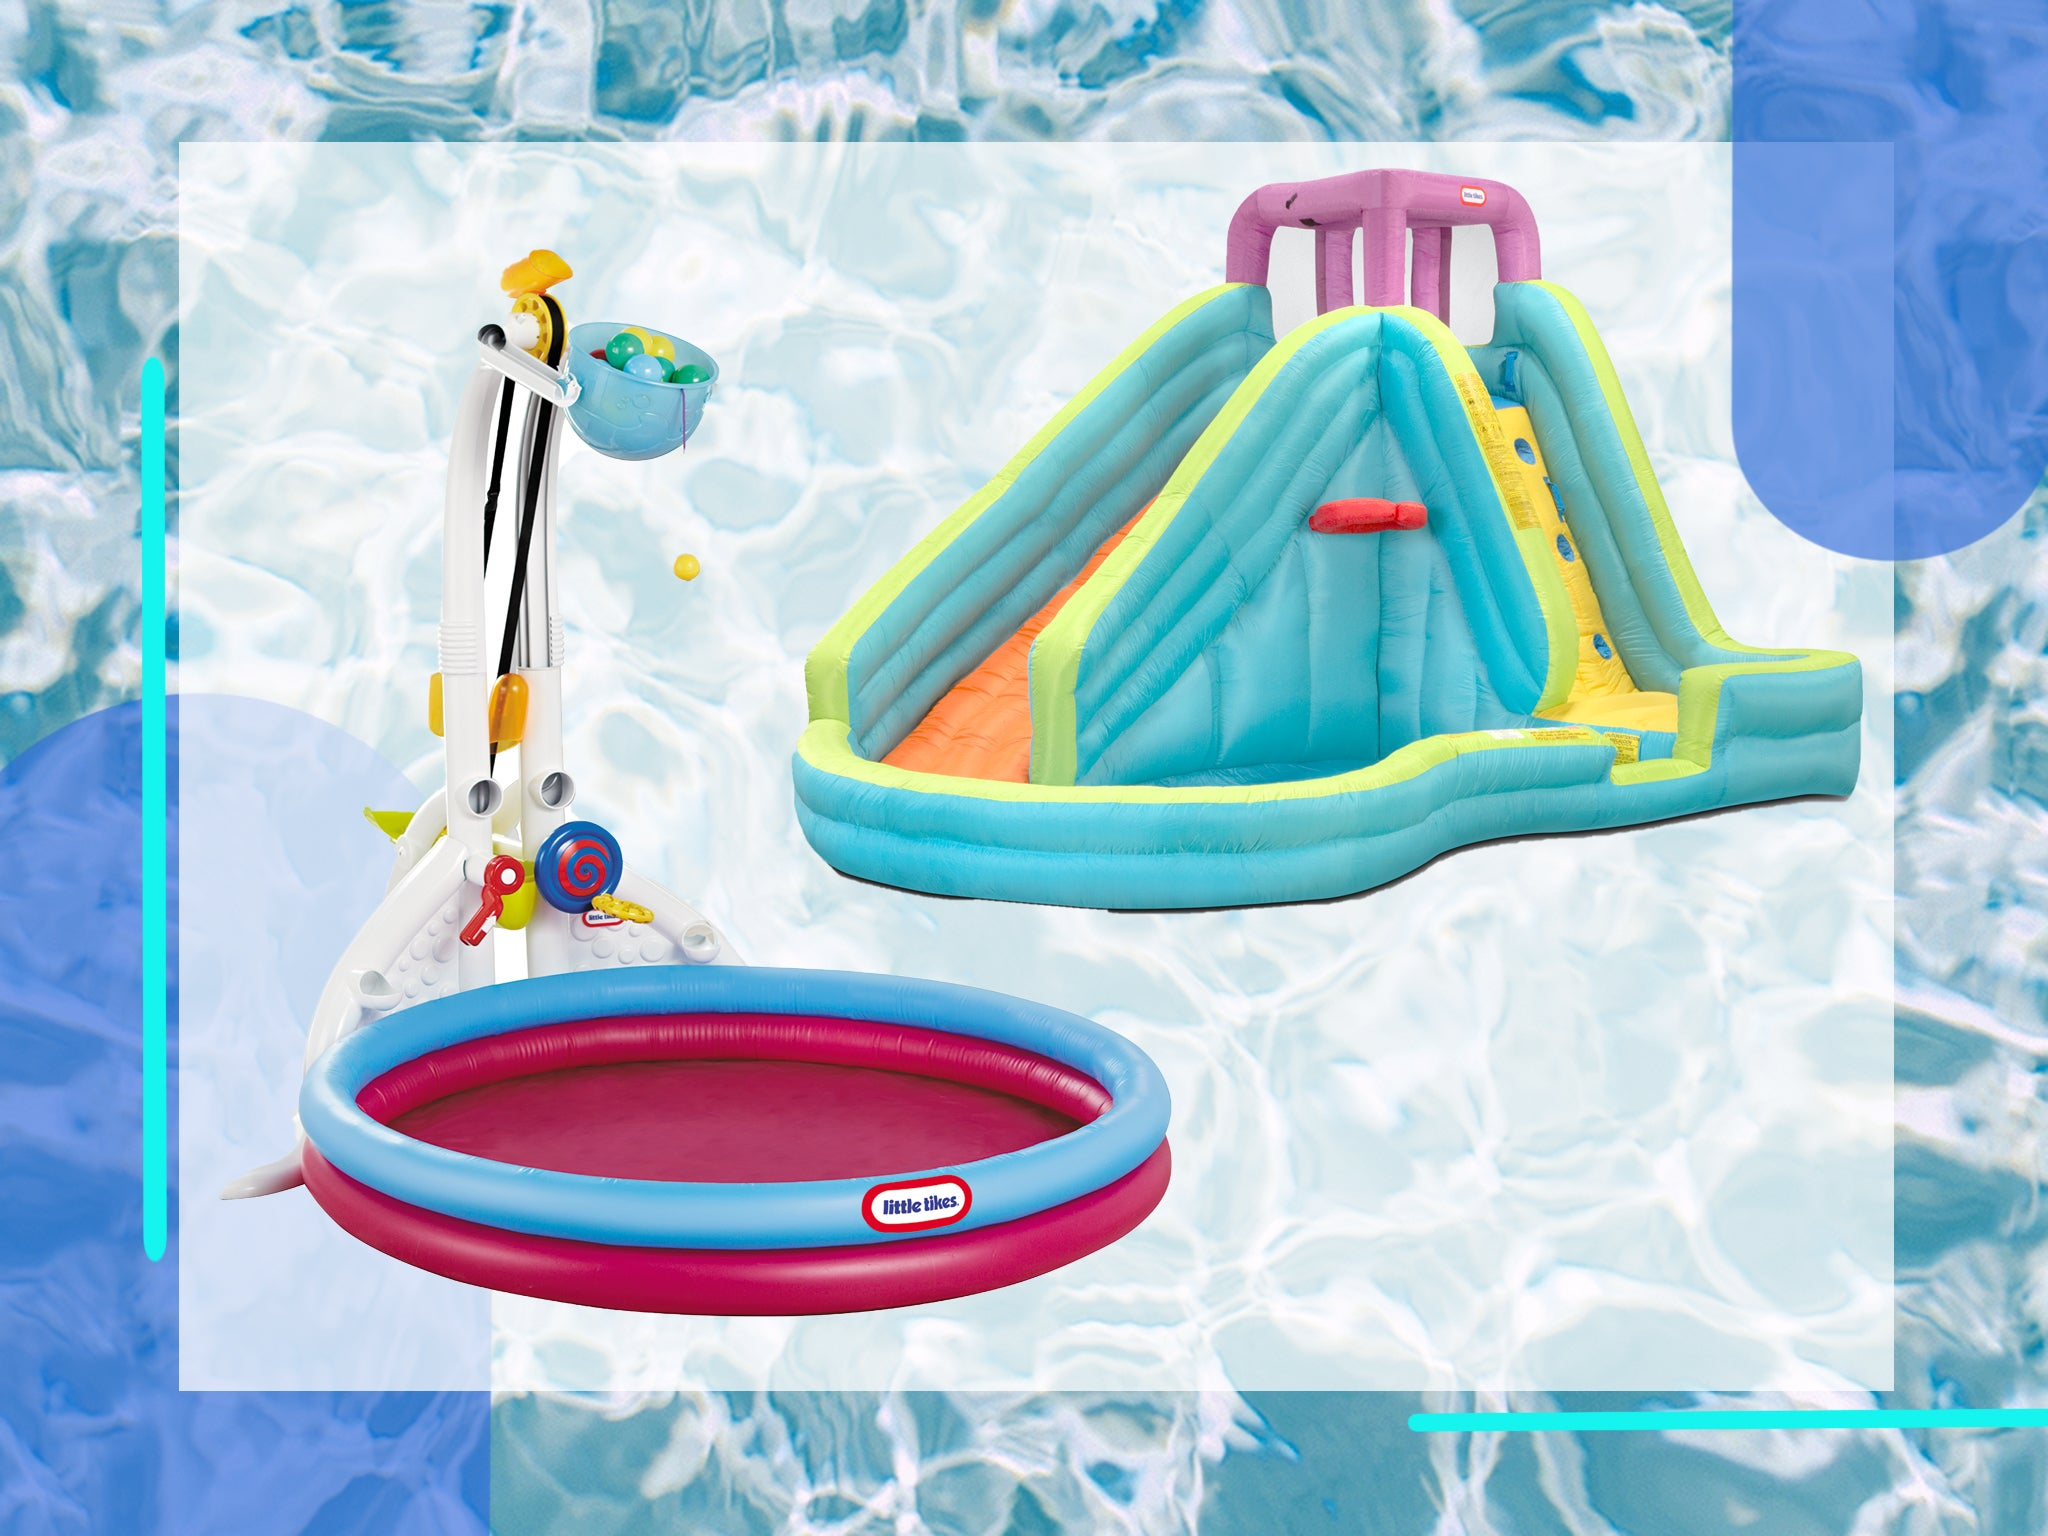 Bestway Fun Play Paddling Pool Inflatable Kids Family summer garden activity